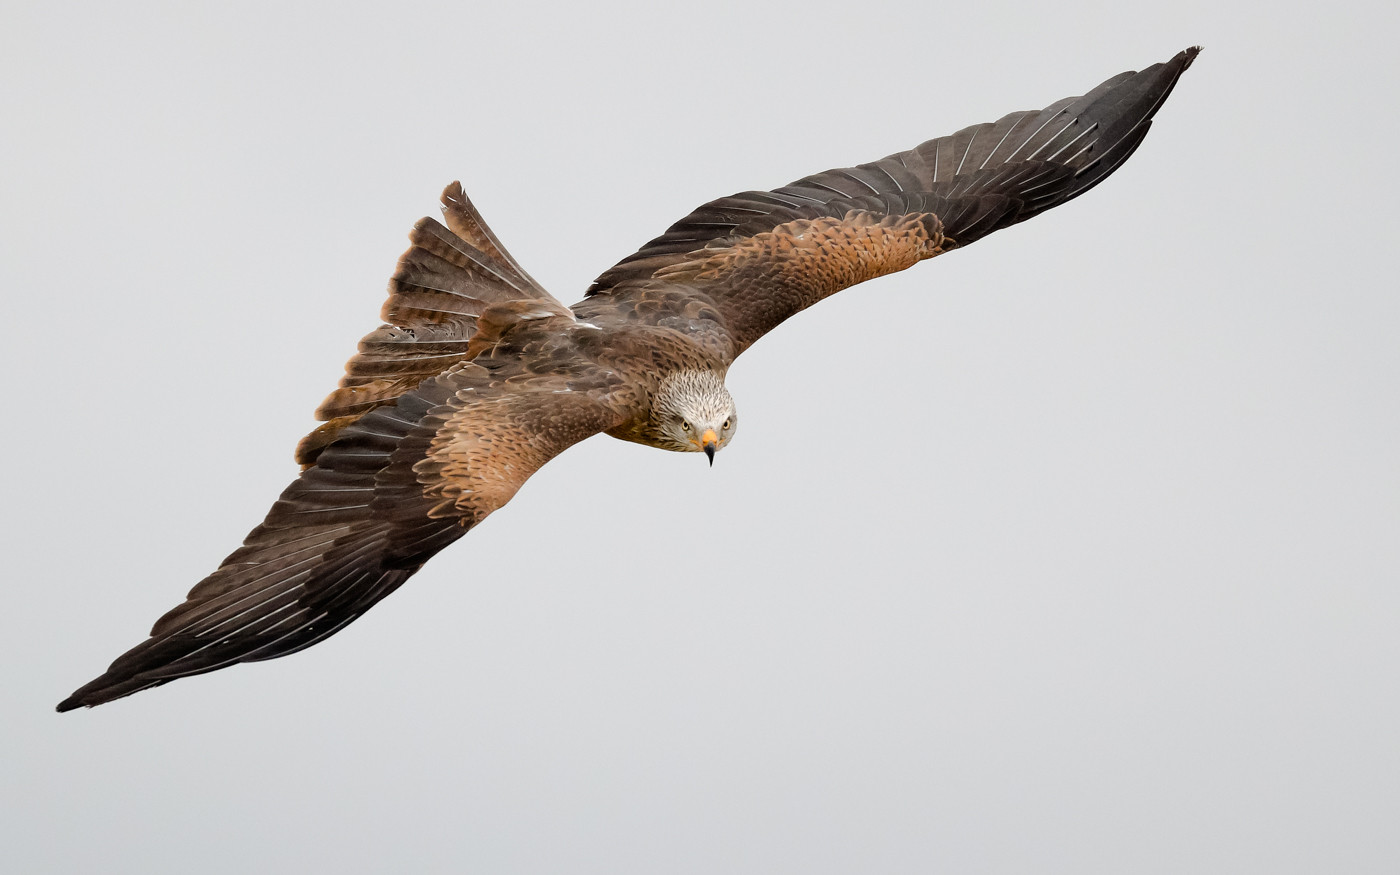 19 THE PREDATOR'S STARE OF A BLACK KITE by David Godfrey